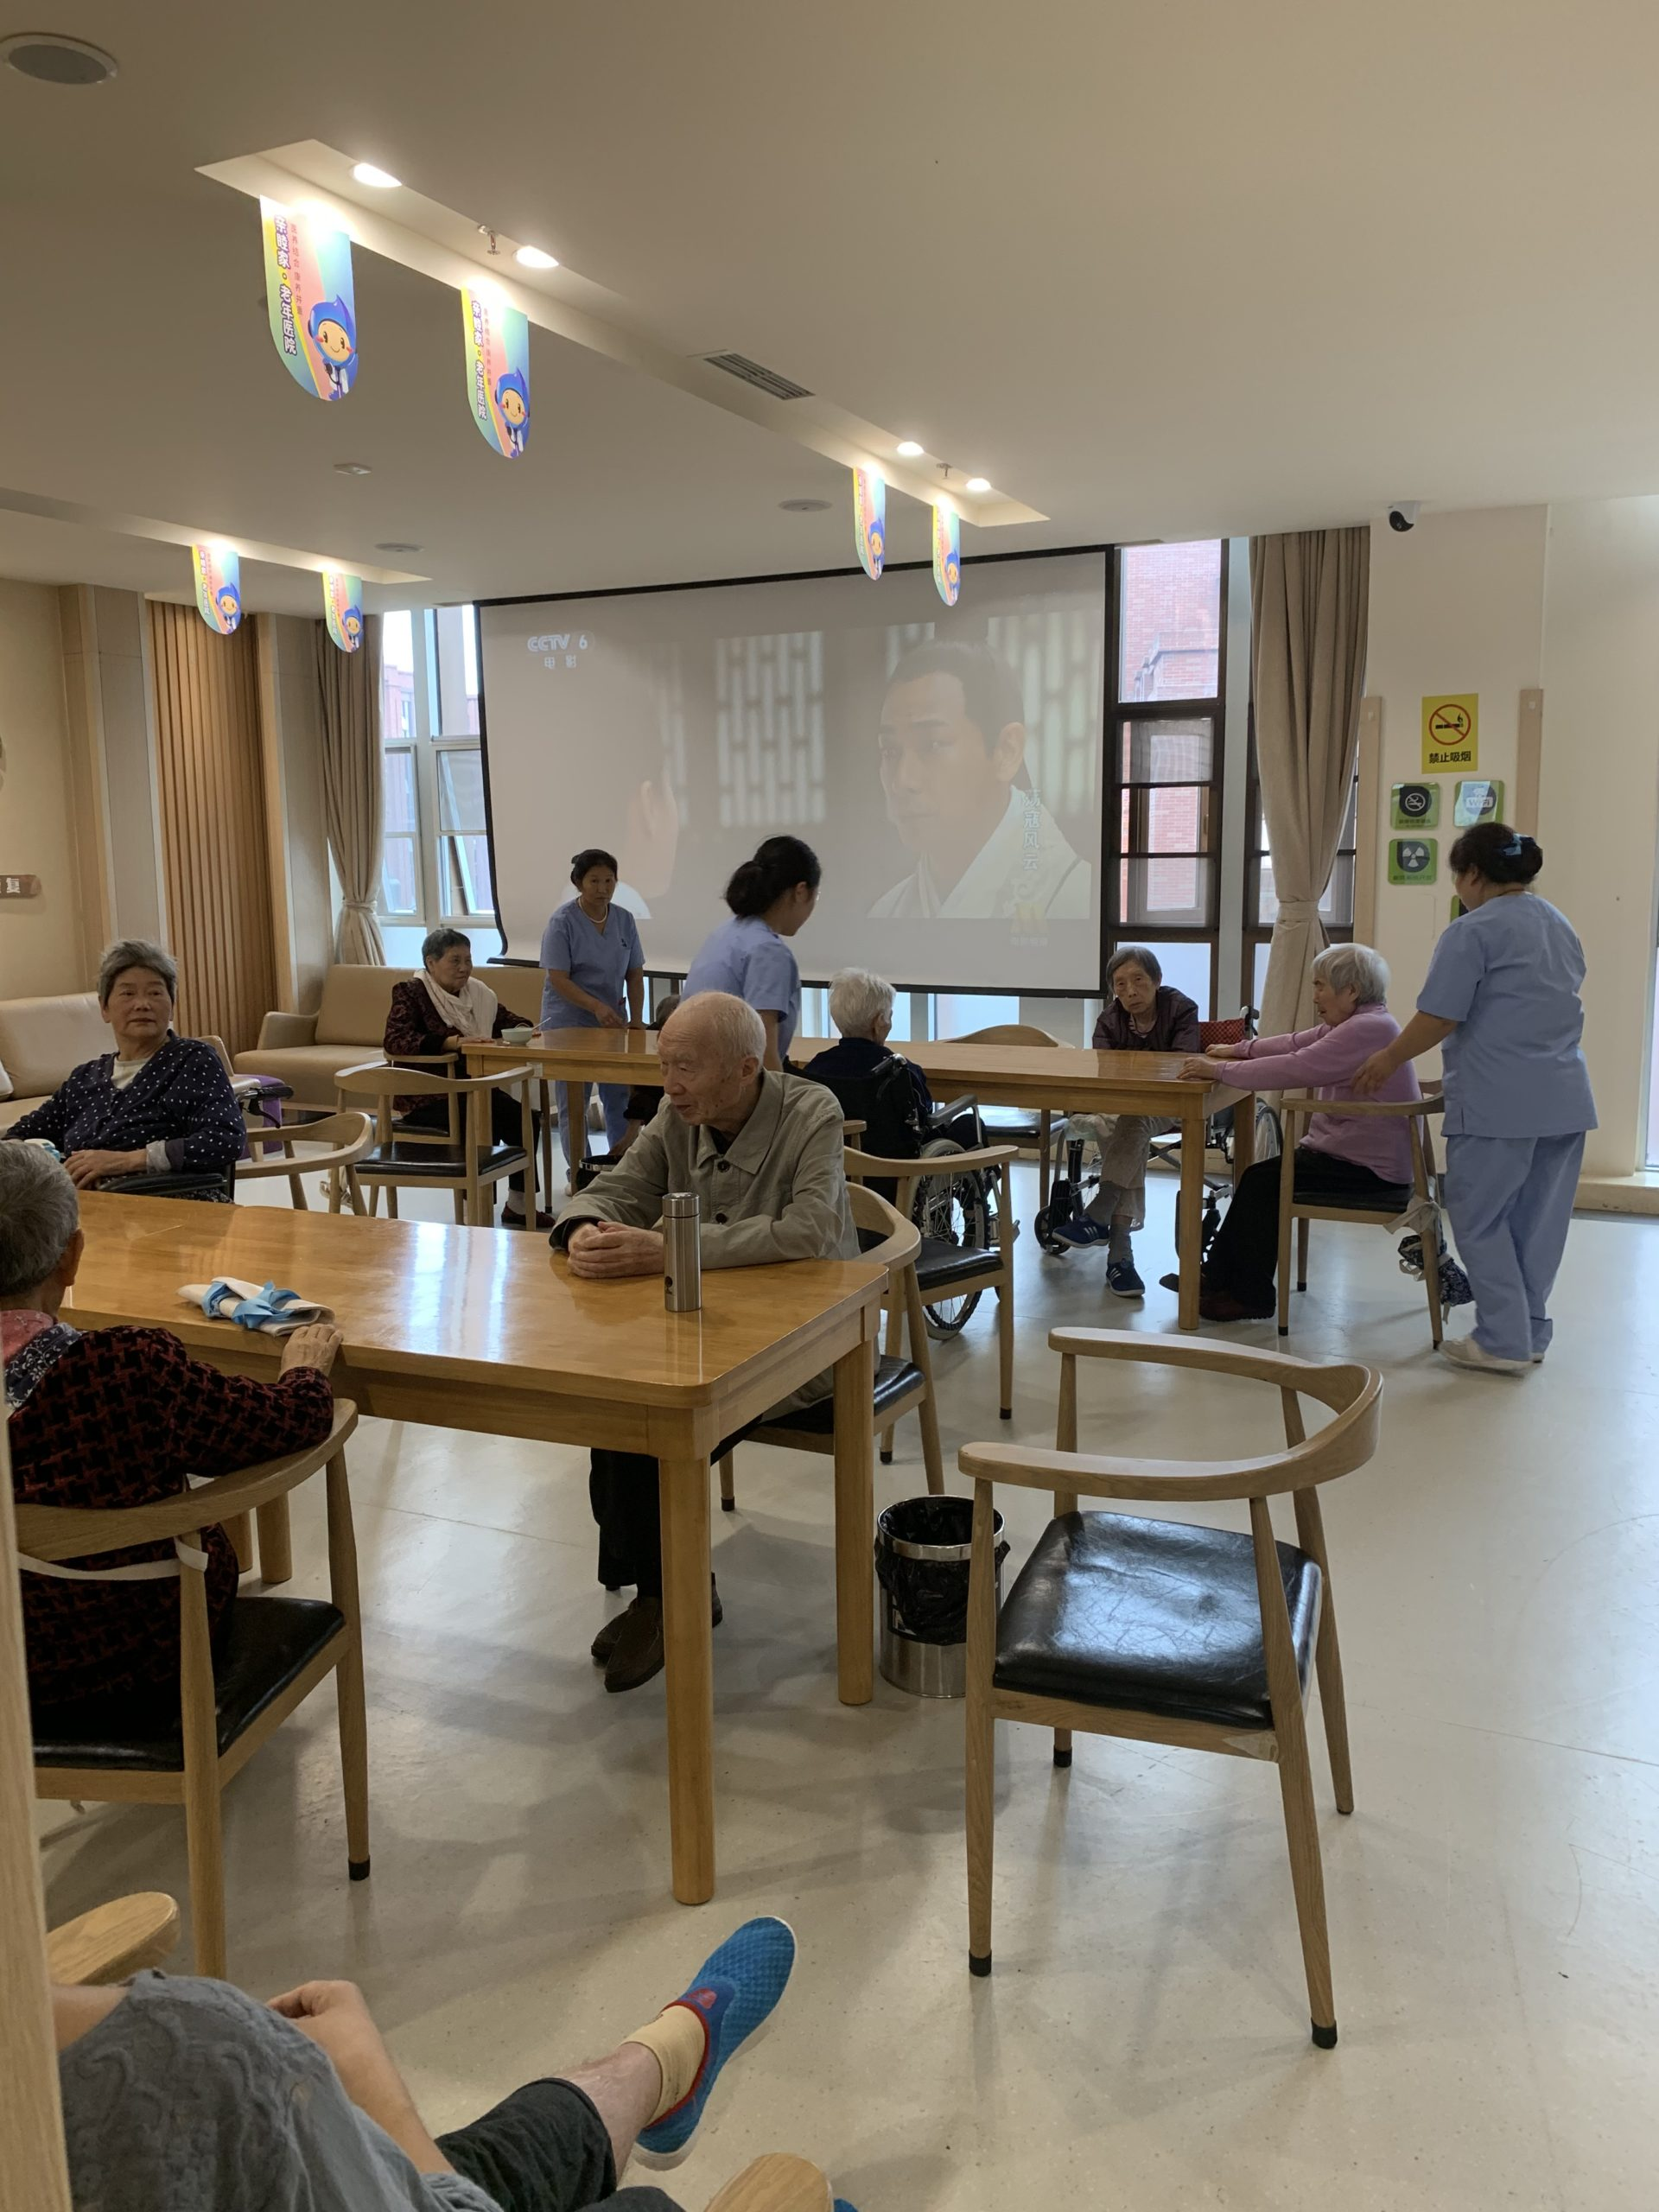 Photo of the interior of Chinese care facility